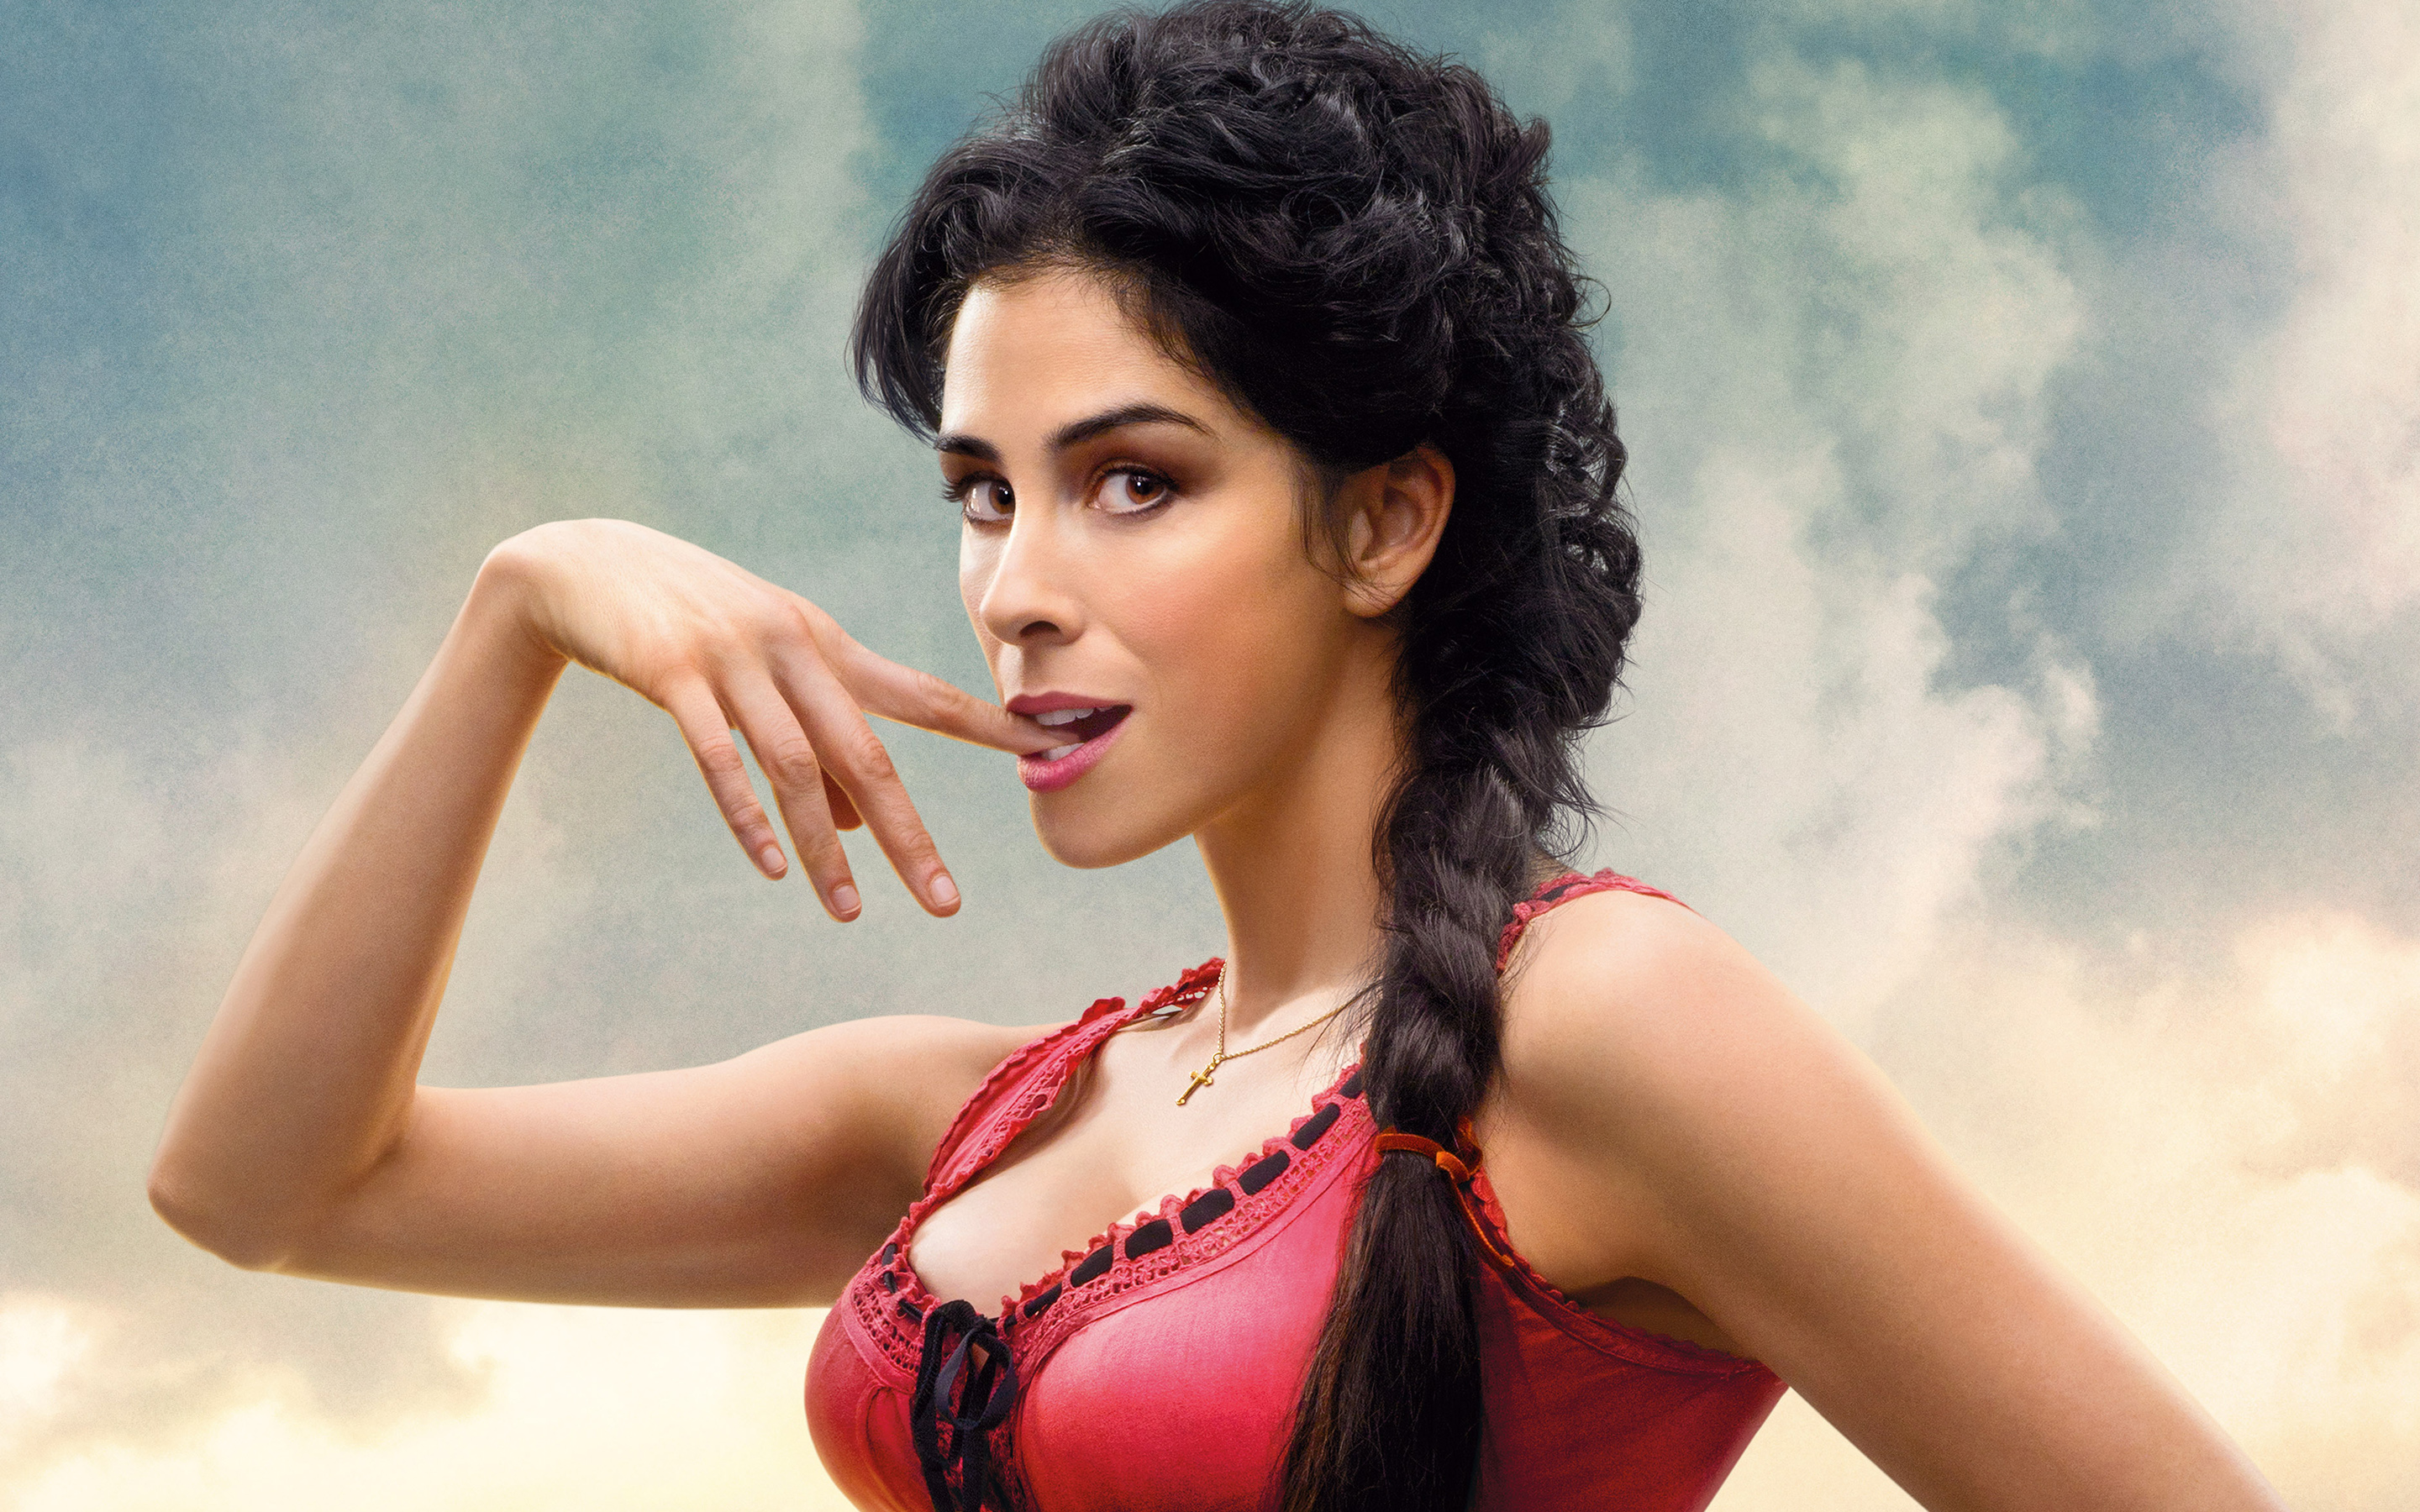 HD Wallpapers Sarah Silverman in A Million Ways to Die in the West